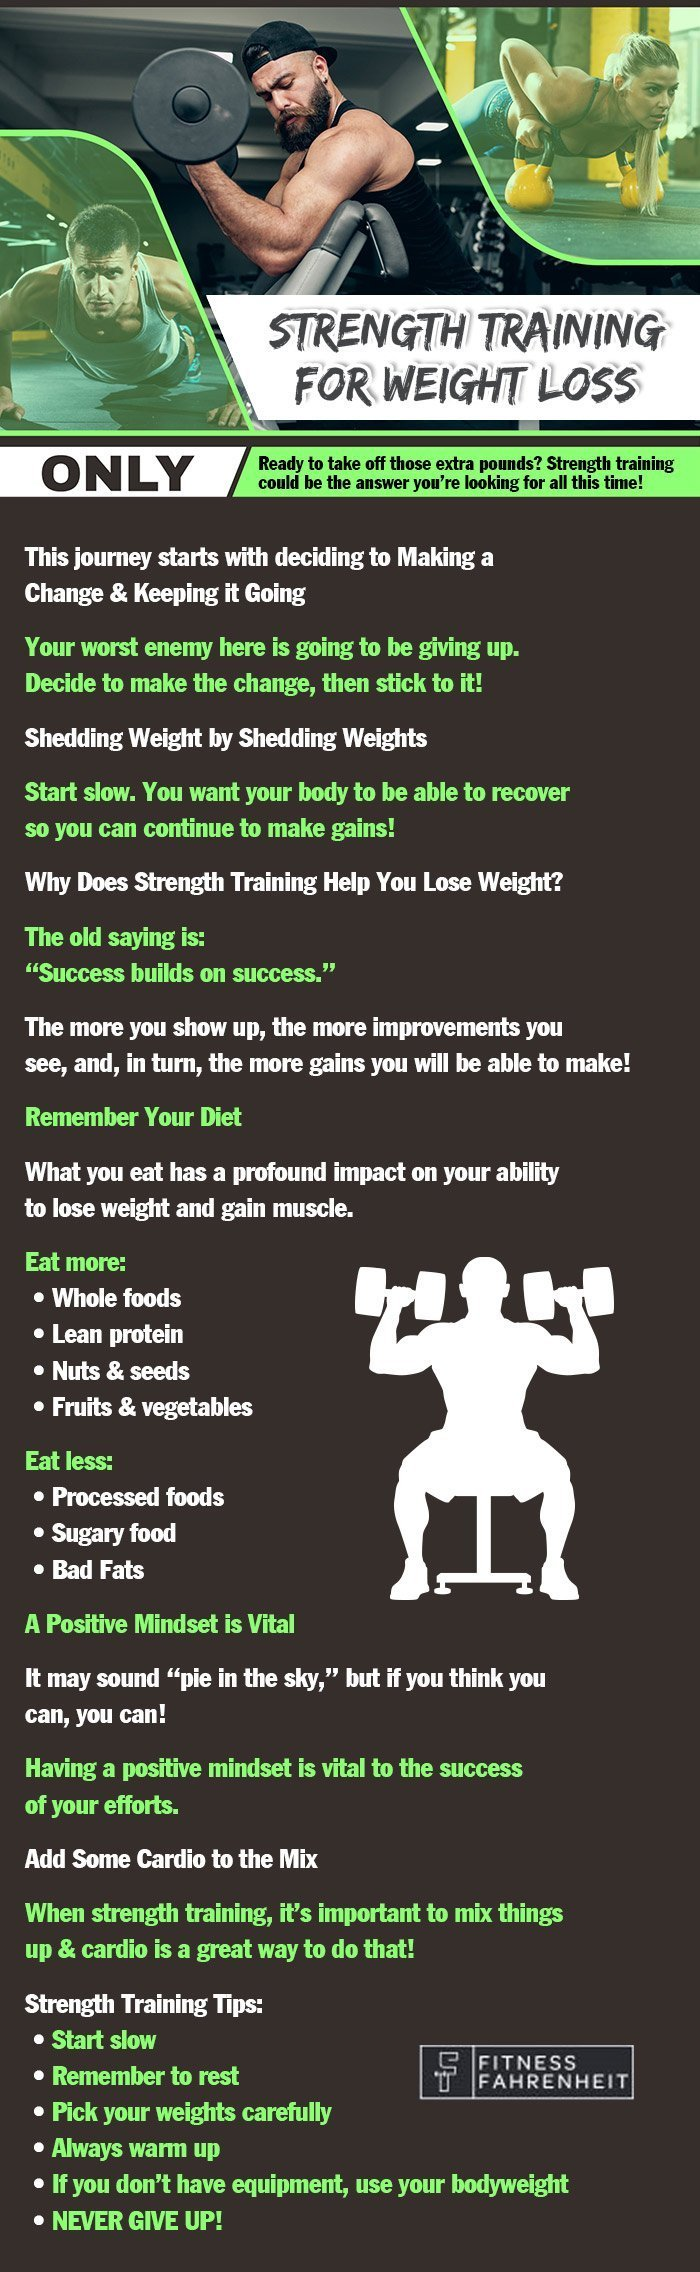 strength training for weight loss infographic